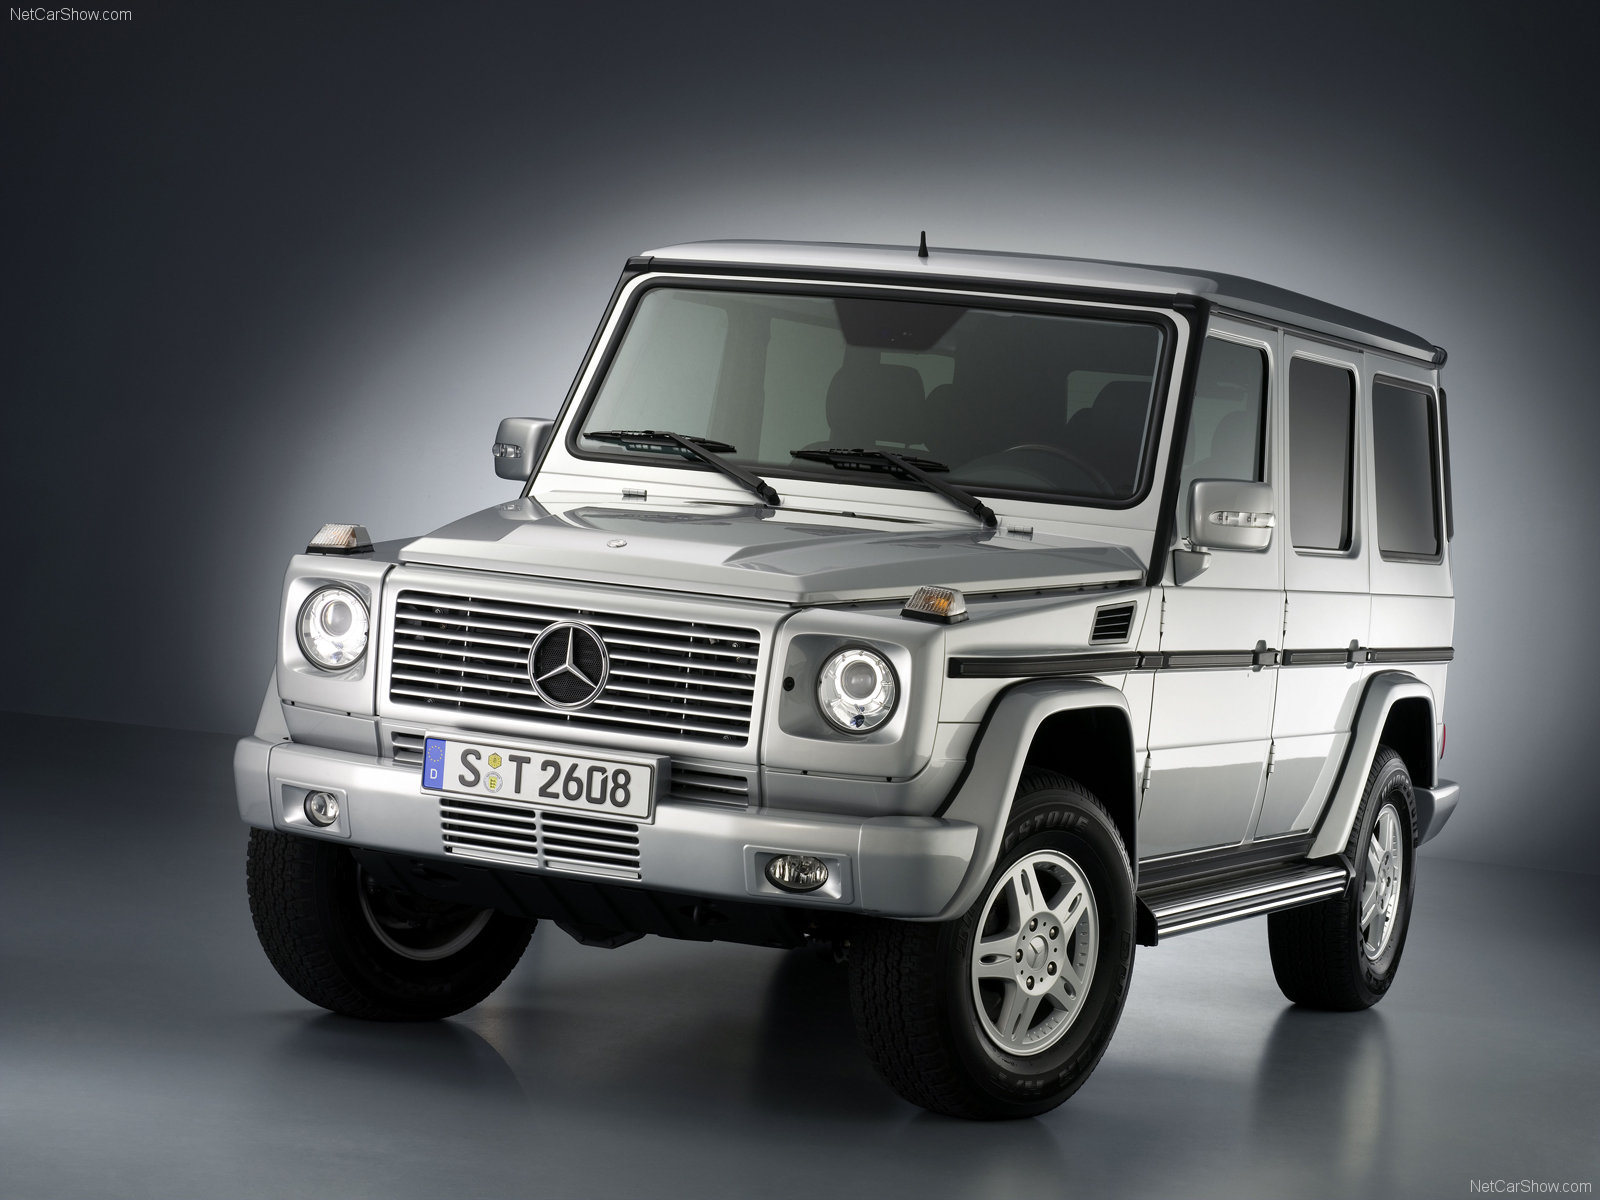 used sport car 2011 mercedes benz g class 2010 wallpaper. Black Bedroom Furniture Sets. Home Design Ideas